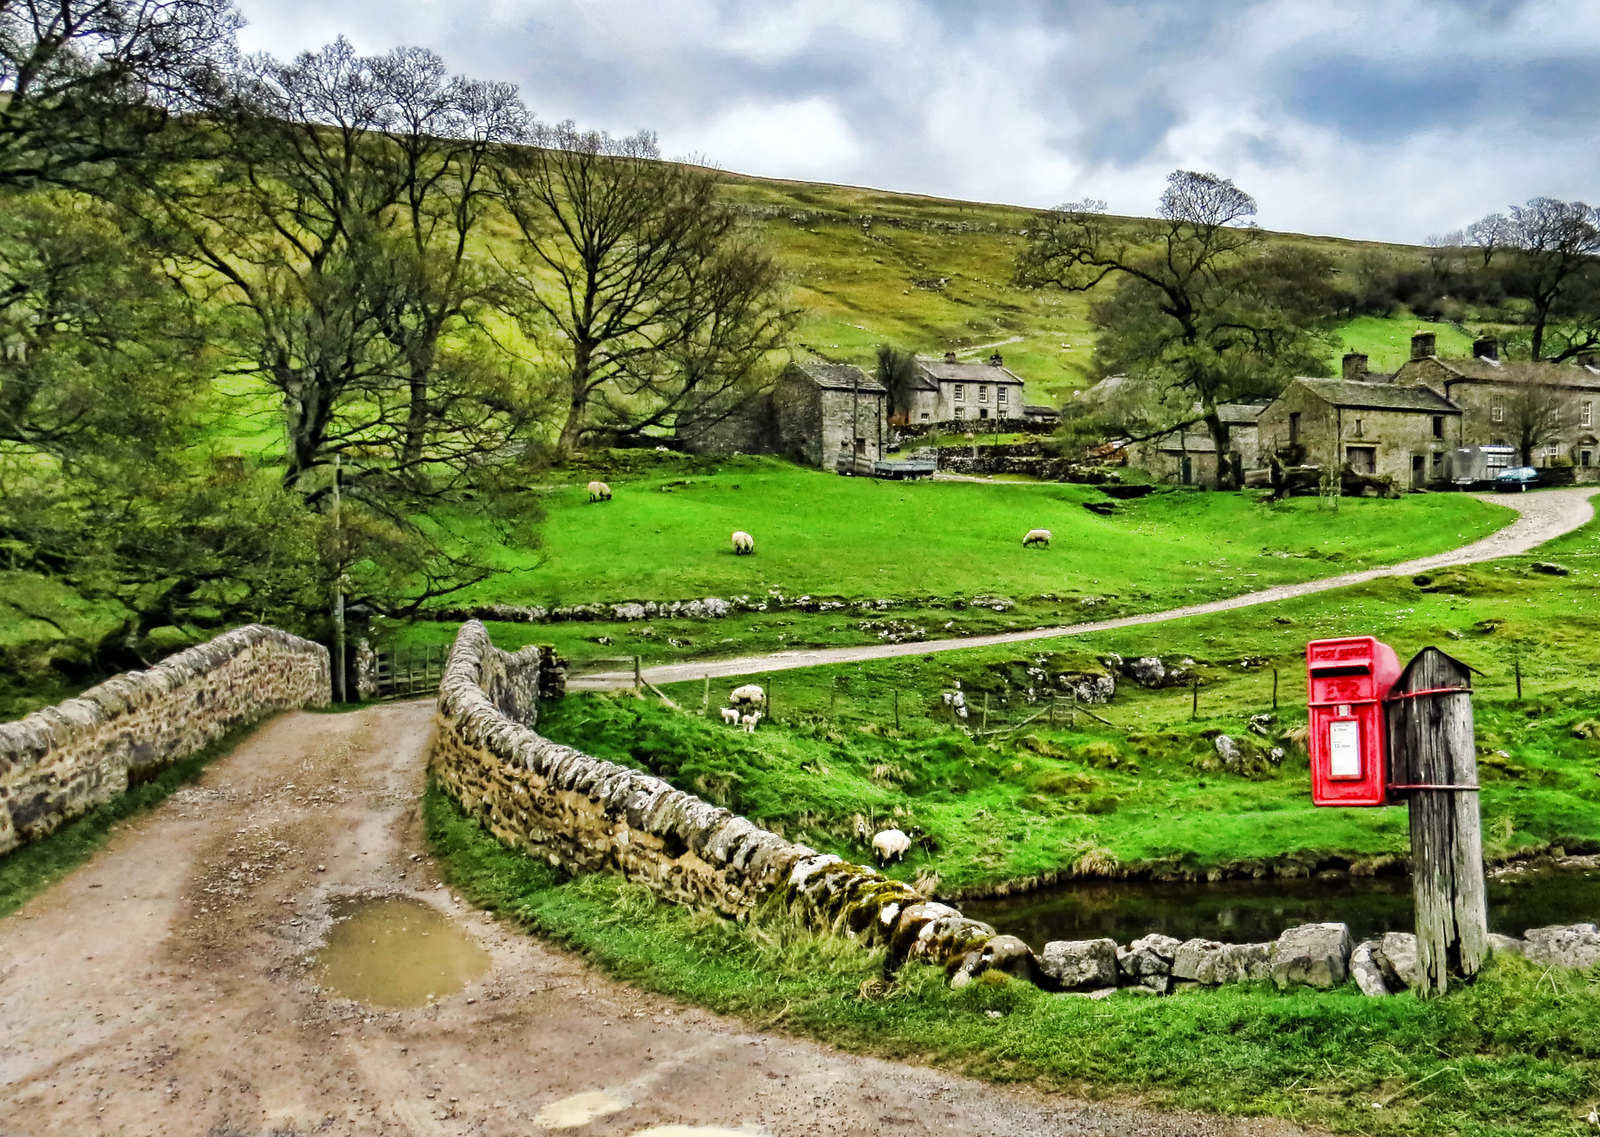 Yockenthwaite is a hamlet in the Langstrothdale valley in the Yorkshire Dales. Creit Alison Christine